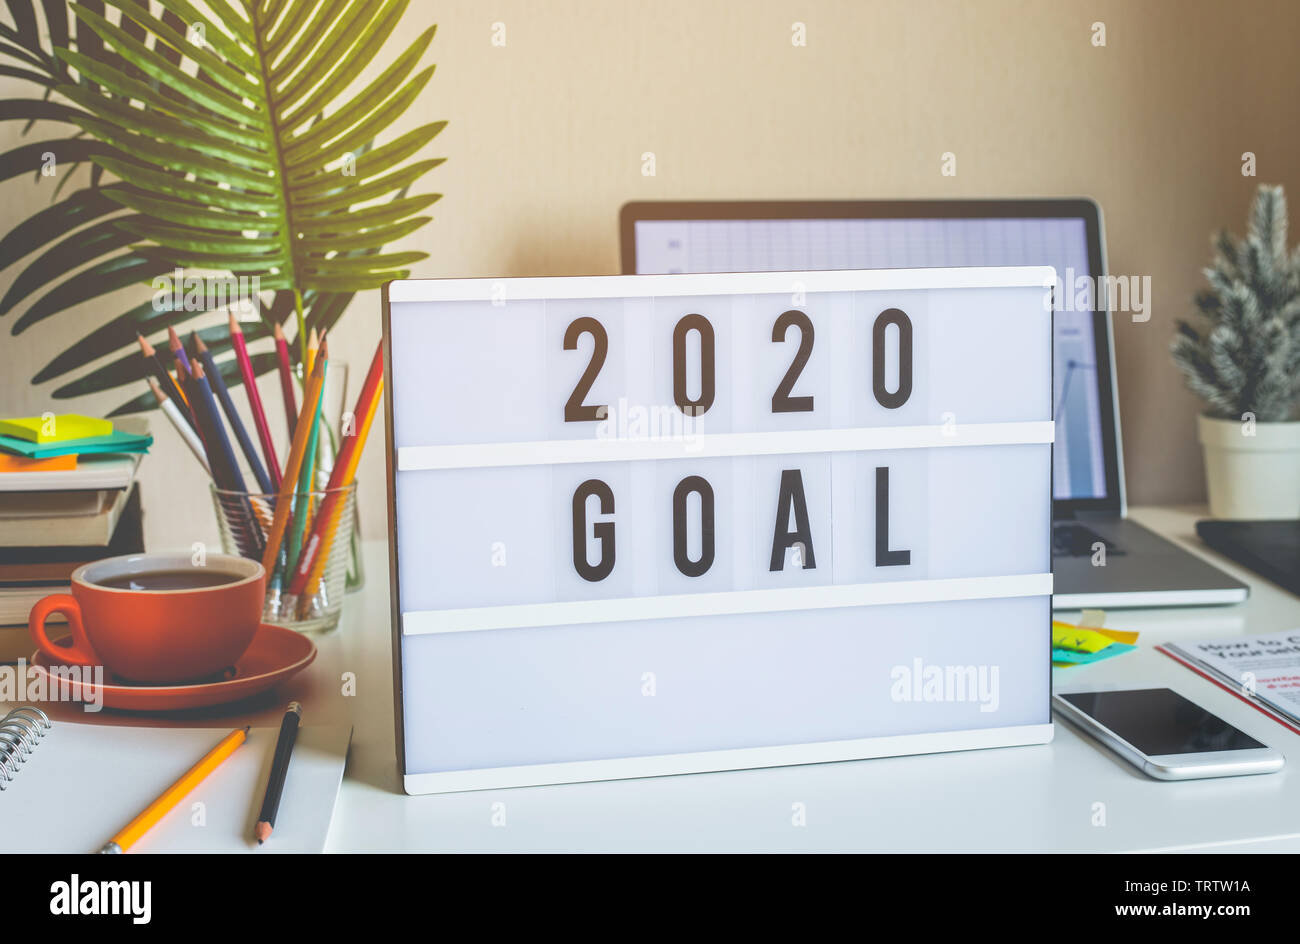 Business Use Of Home 2020.2020 New Year Goals Text On Light Box On Desk Table In